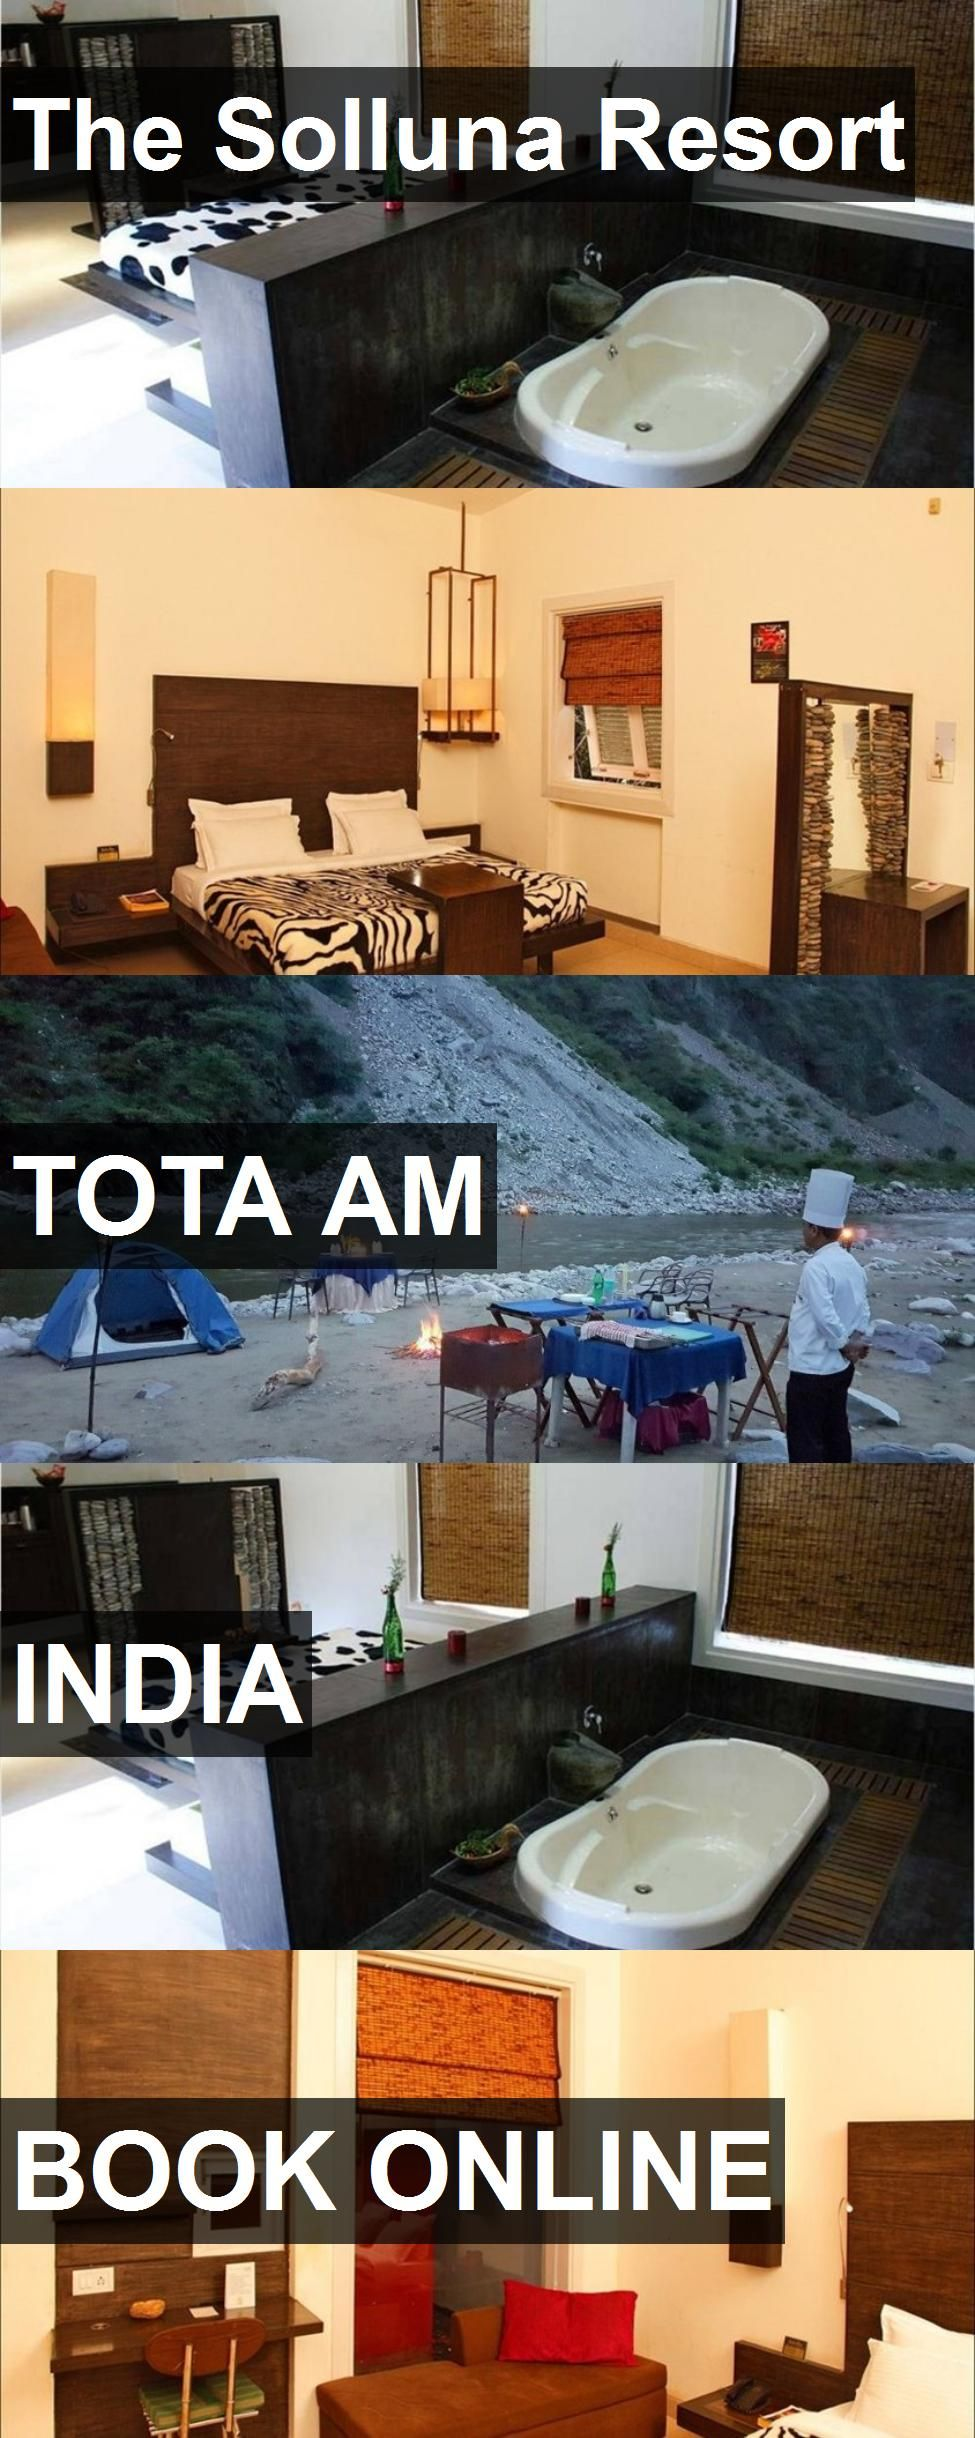 Hotel the solluna resort in tota am india for more information photos also hilton garden inn abilene united states ar